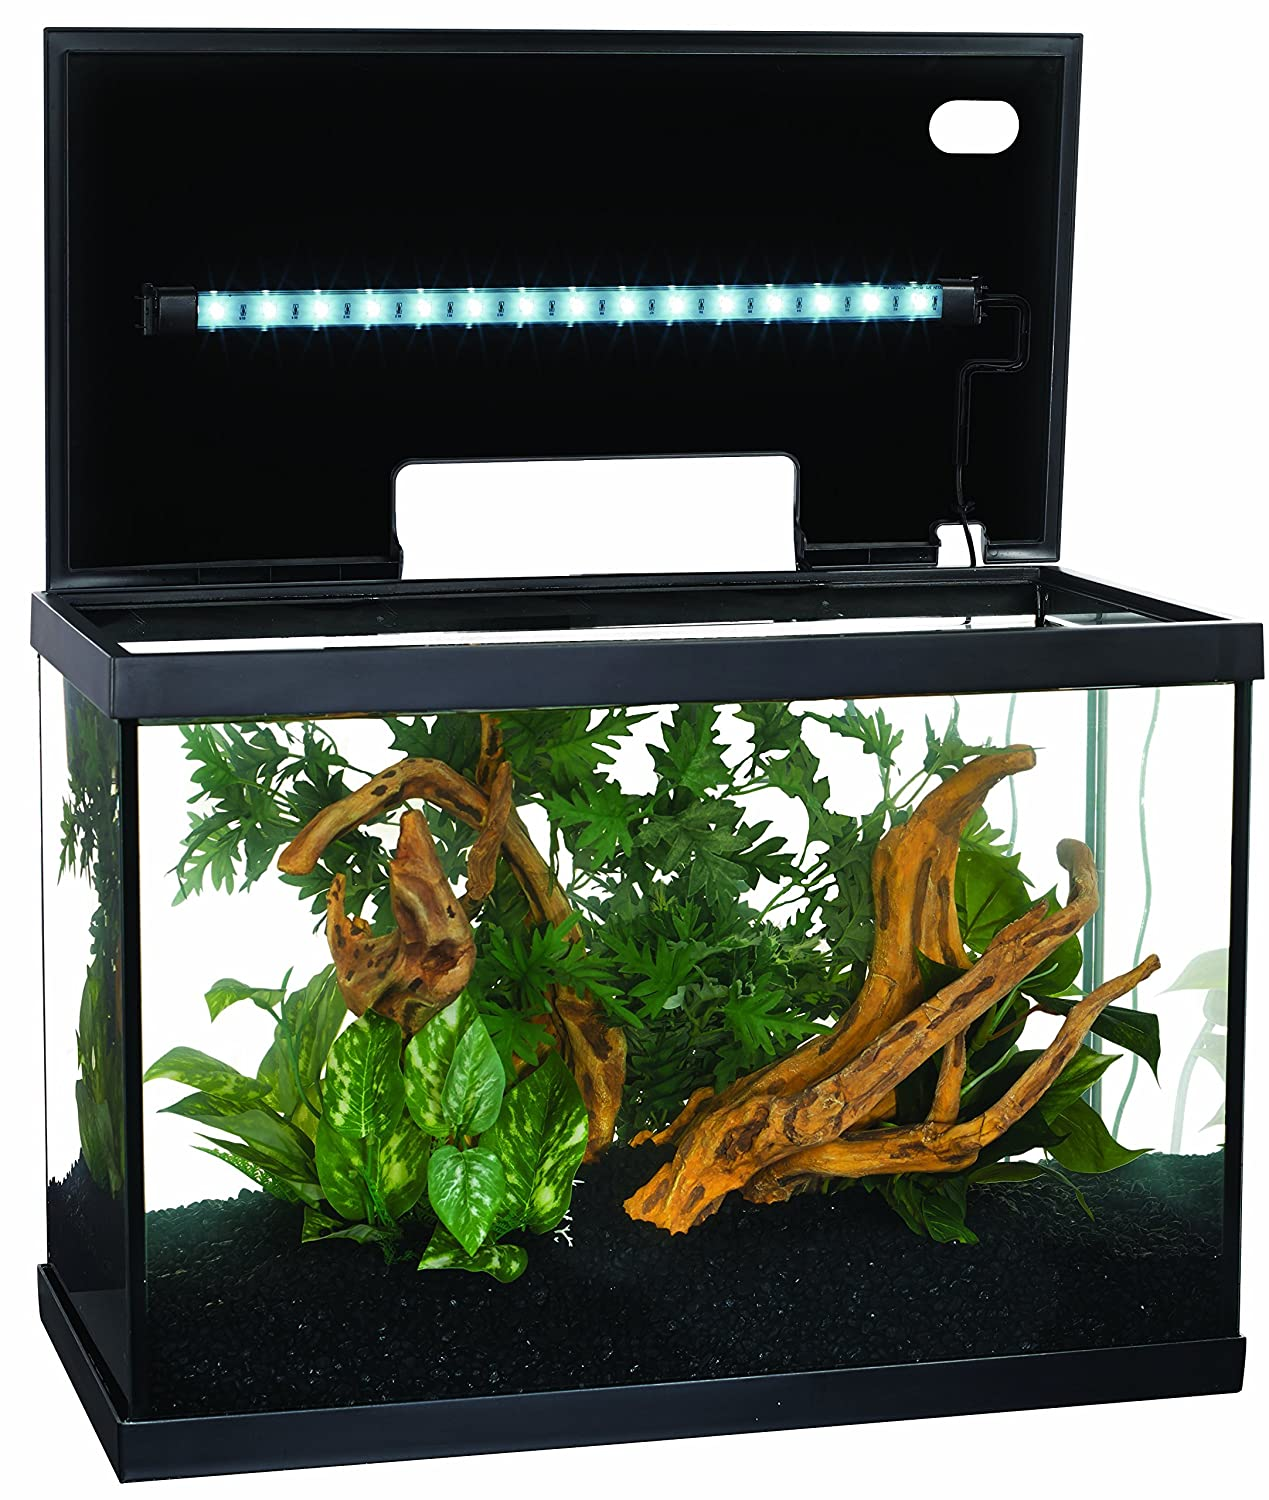 Marina led glass aquarium kit 10 gallon fish tank brand for 10 gallon fish tanks